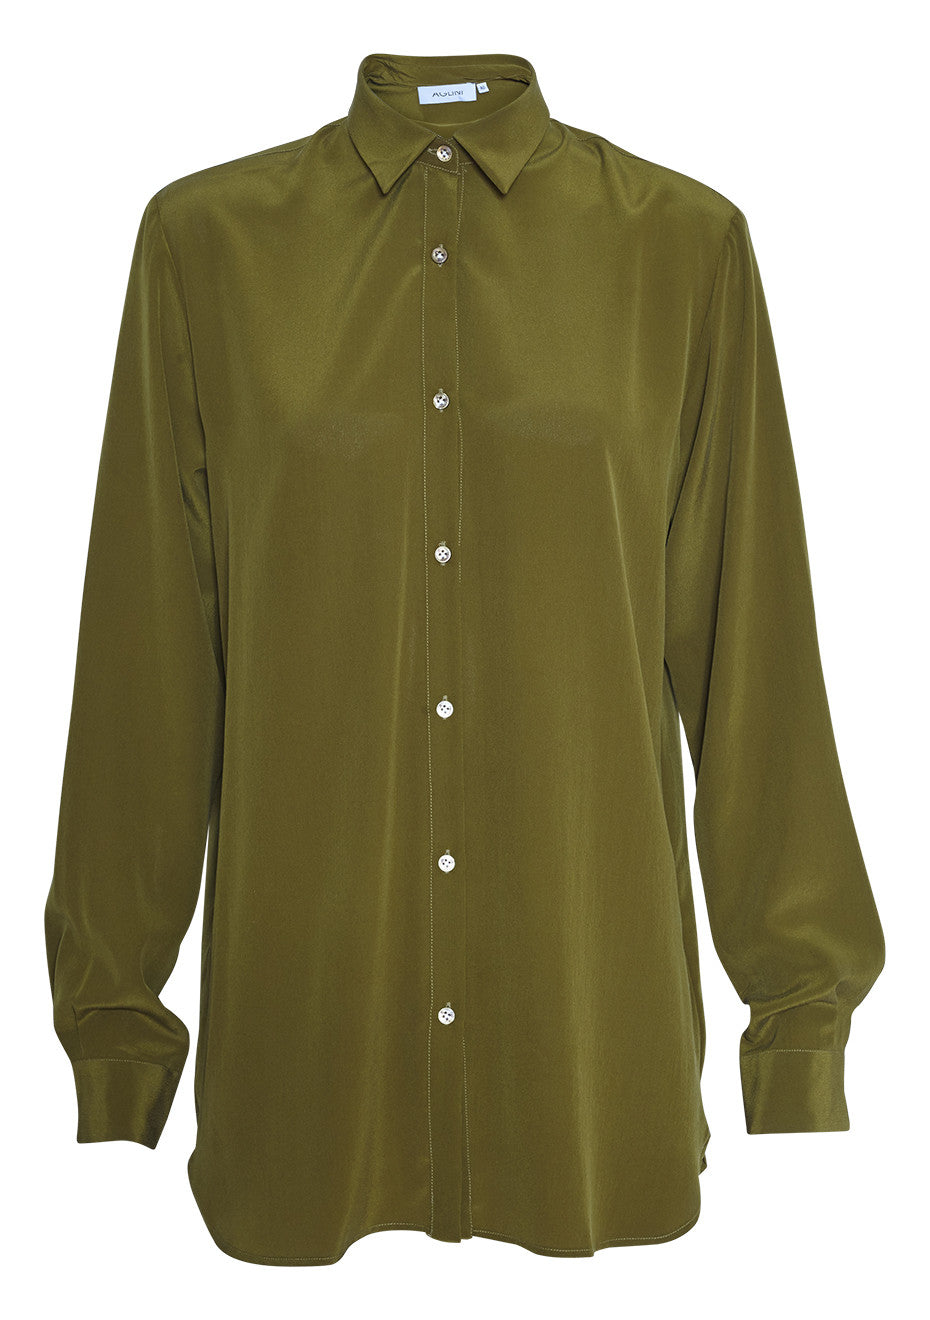 Button-up olive green